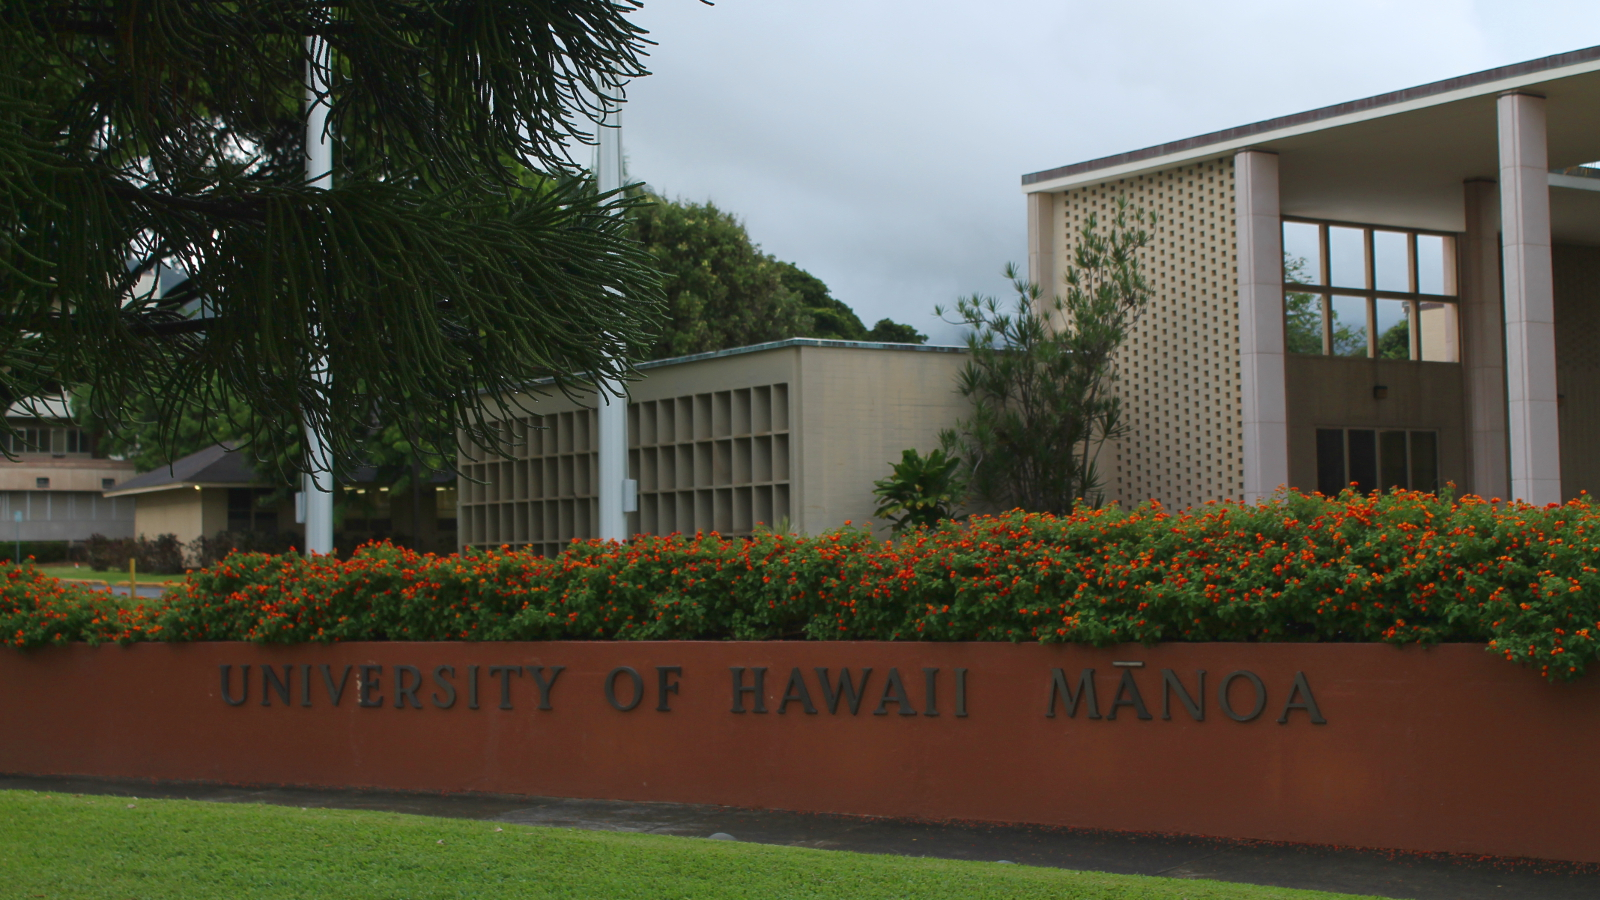 University of Hawaii